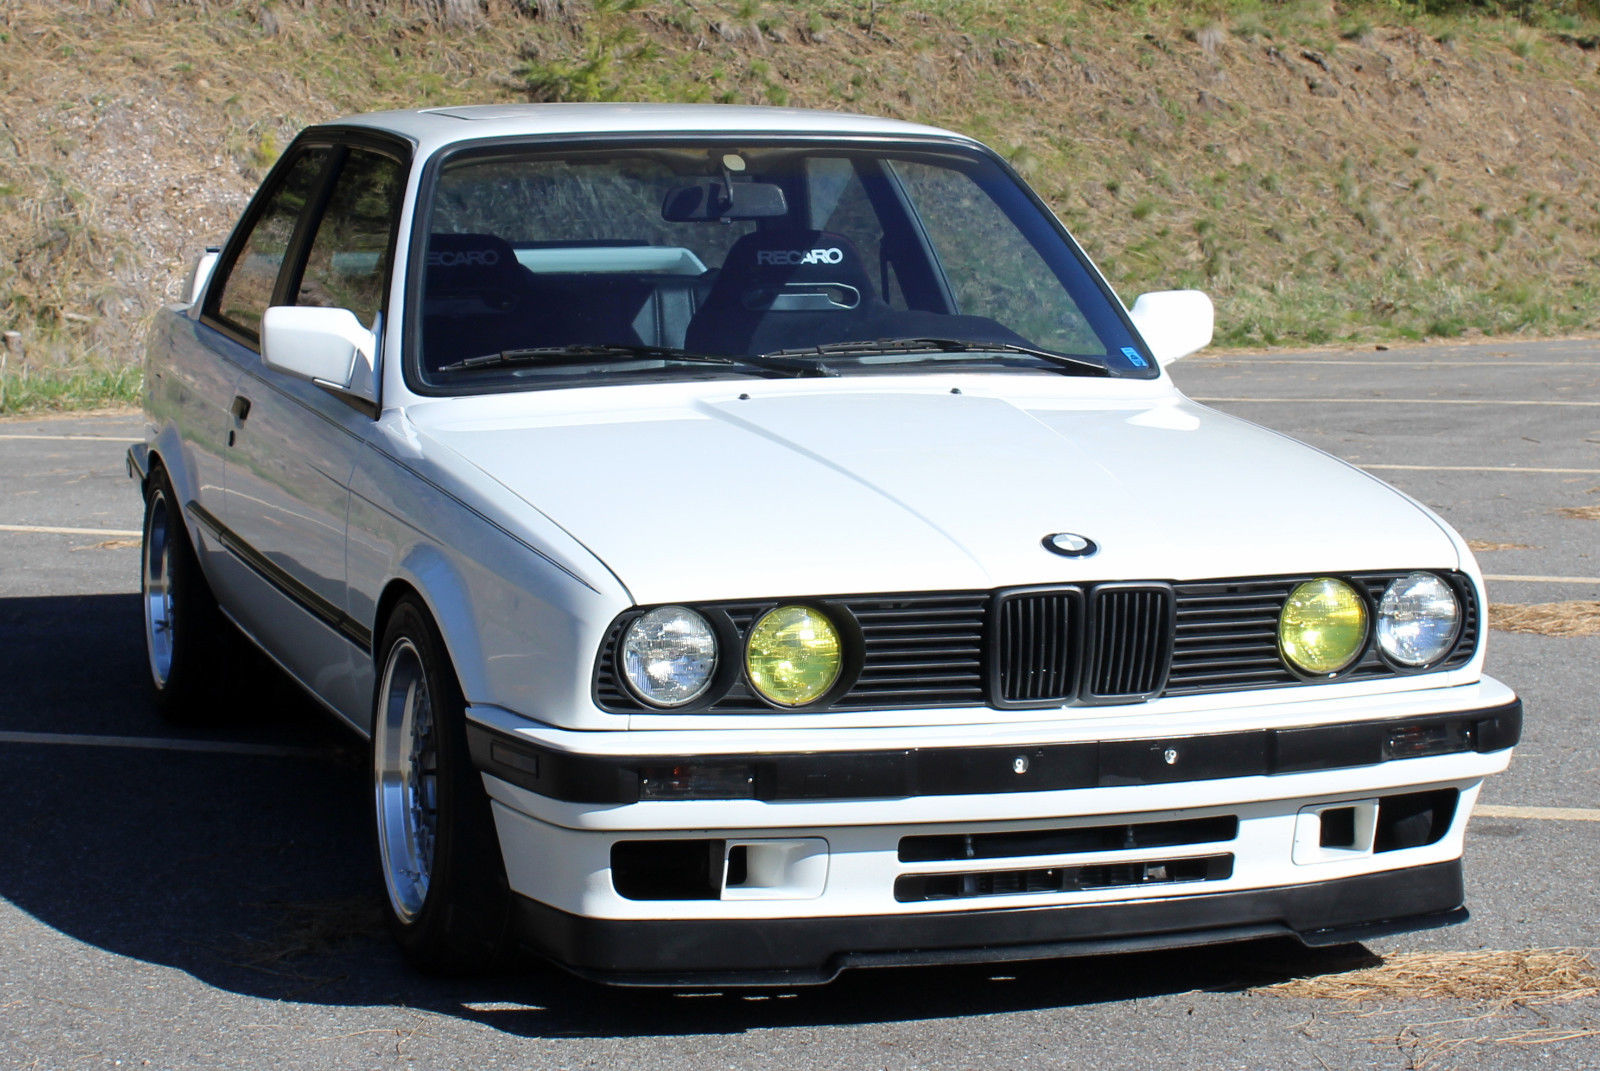 For Sale 1991 Bmw E30 With A Supercharged S52 Engine Swap